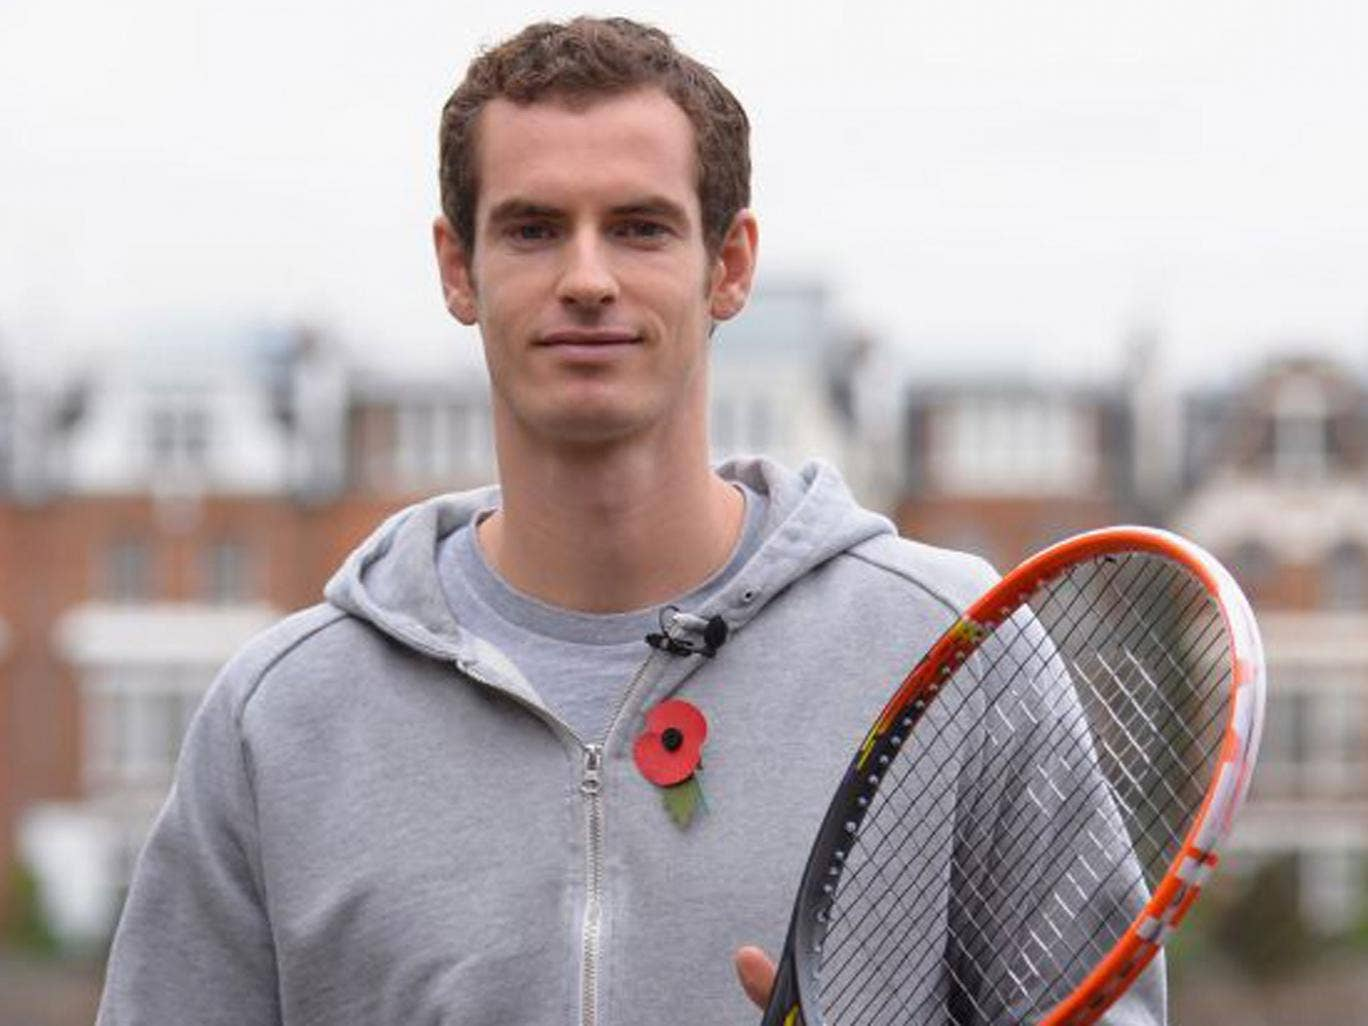 Andy Murray poses at Queen's Club on Thursday